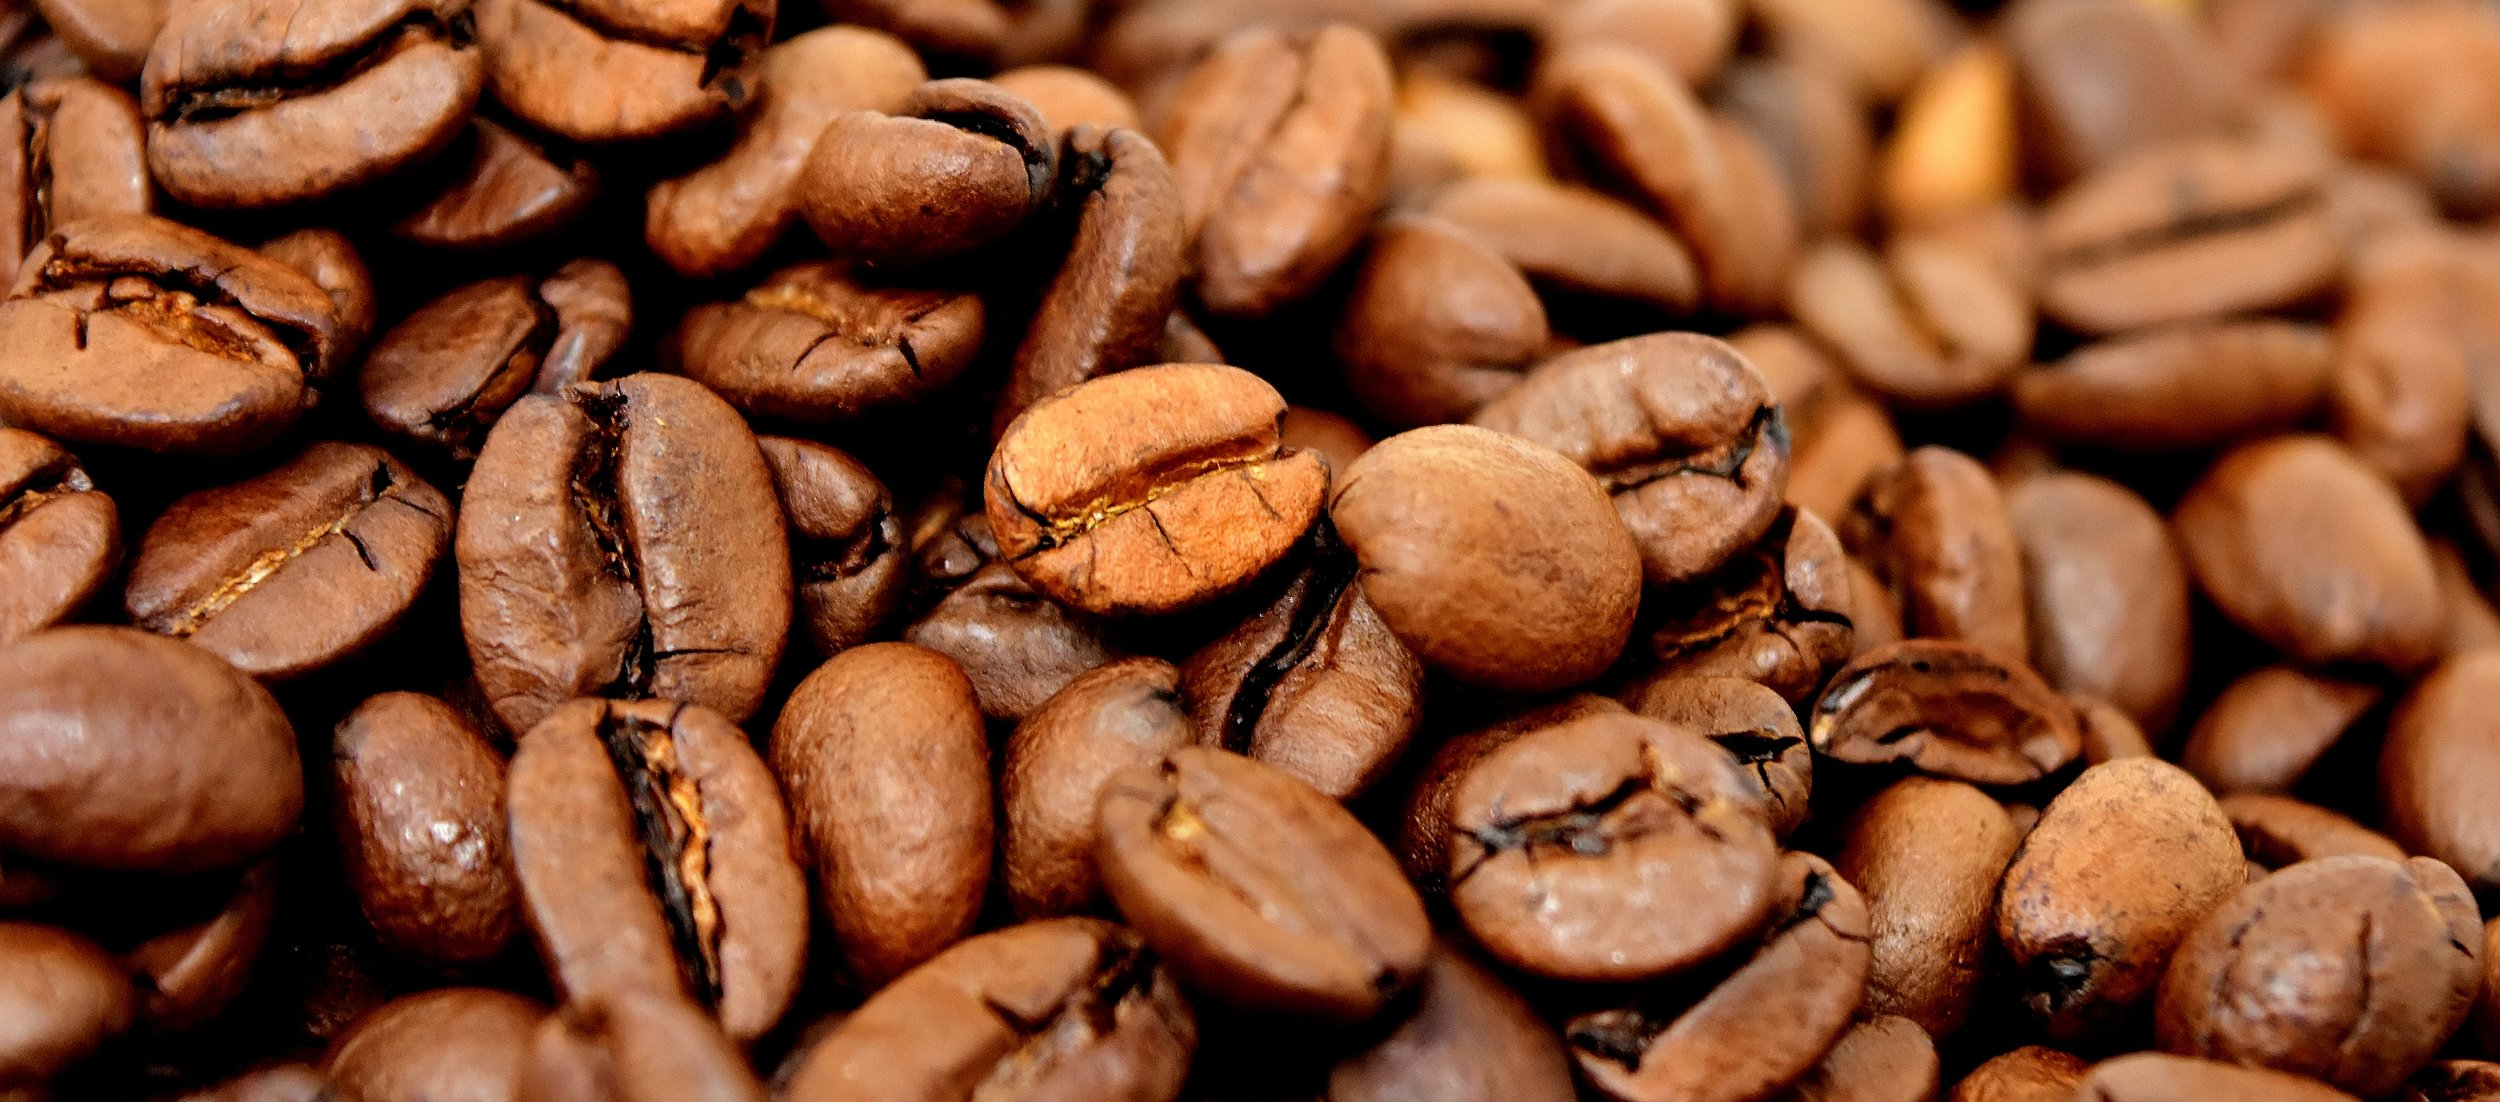 865 Candle Company - Coffee Beans